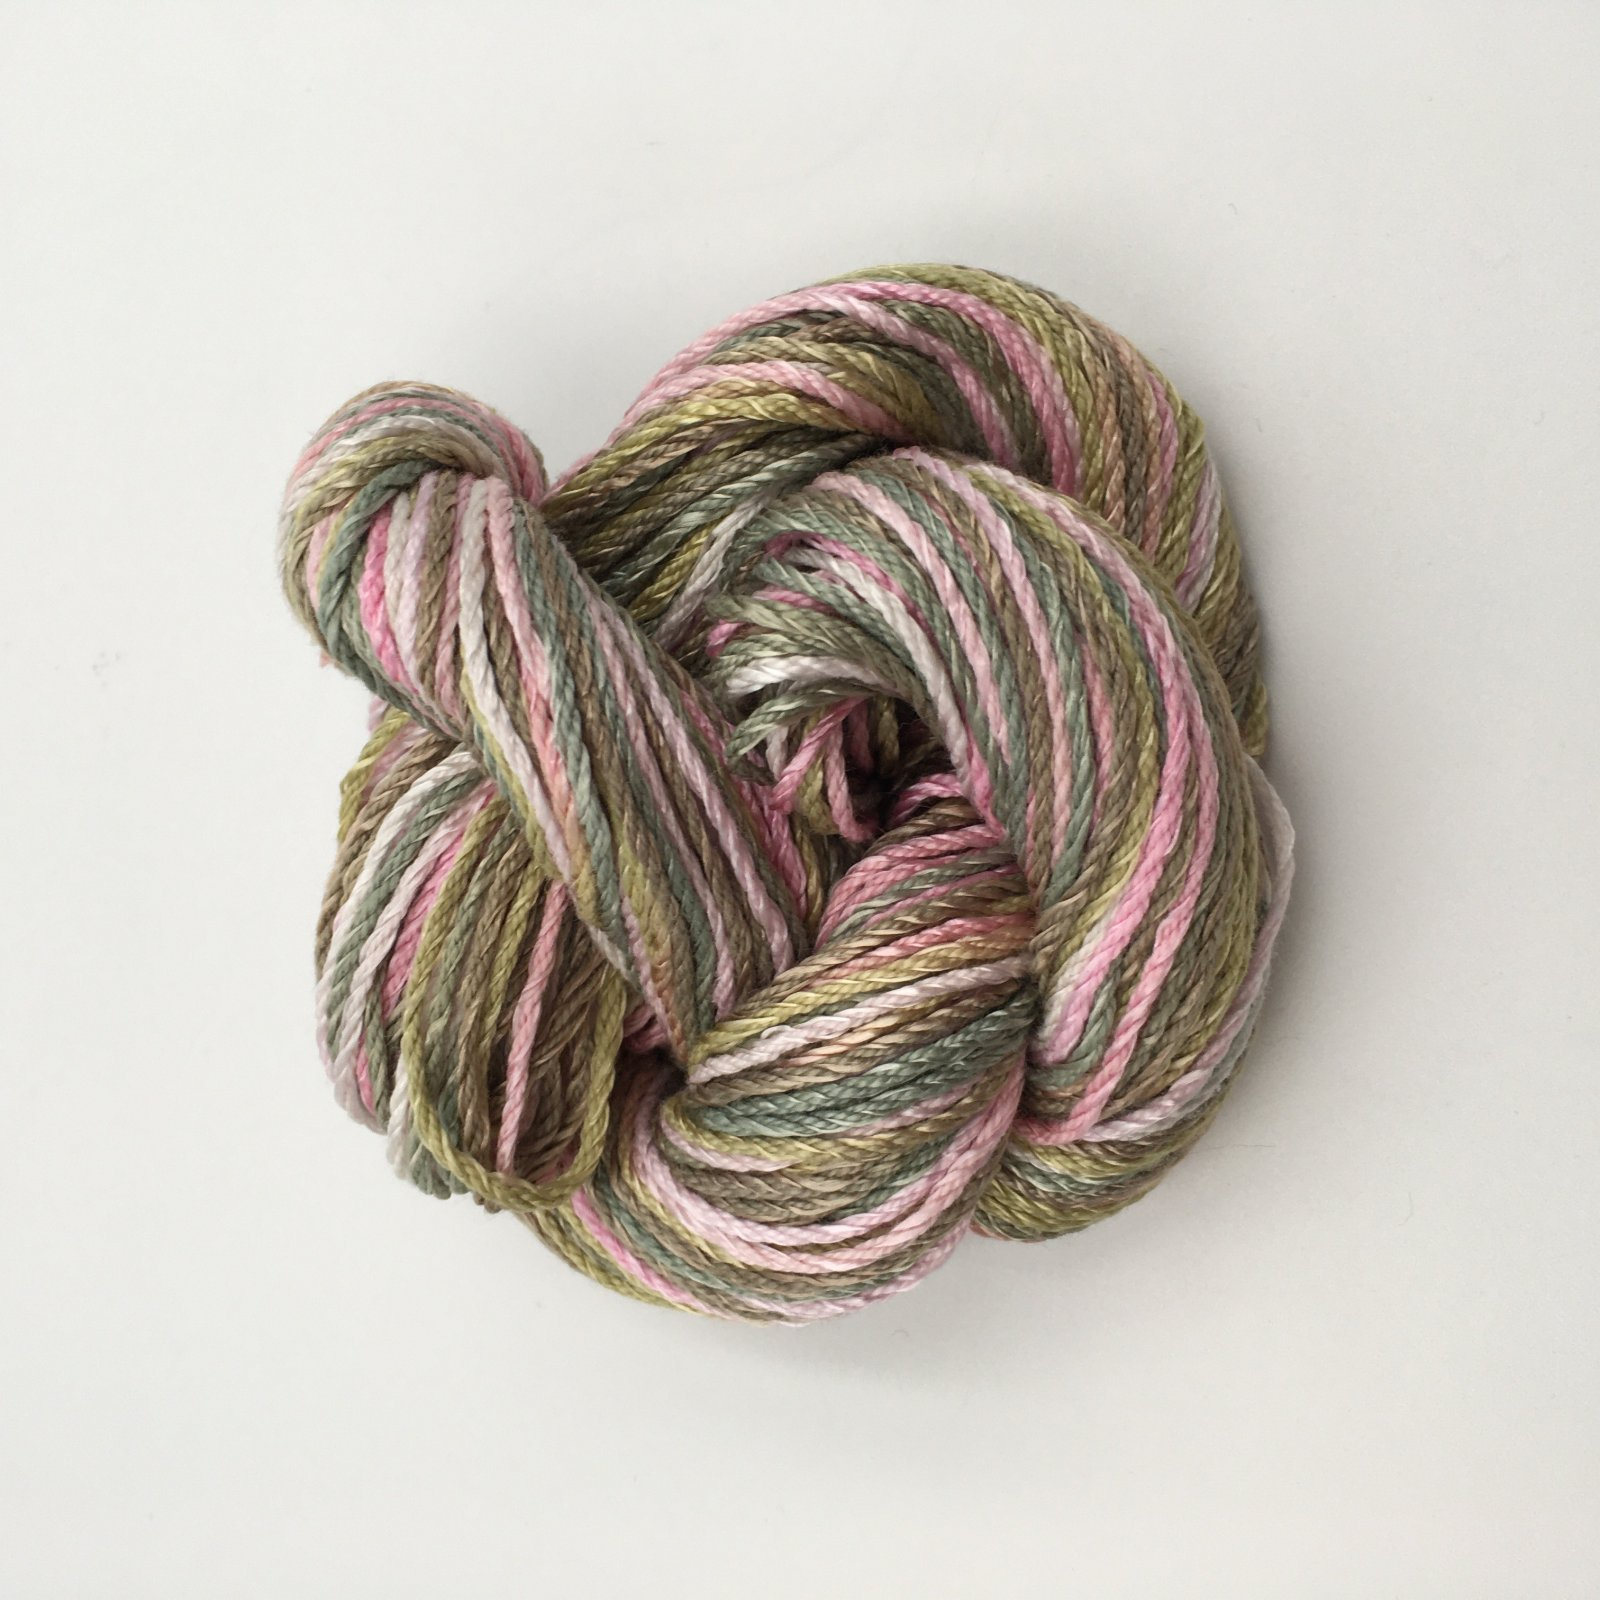 Berroco Cotton Twist - 8446